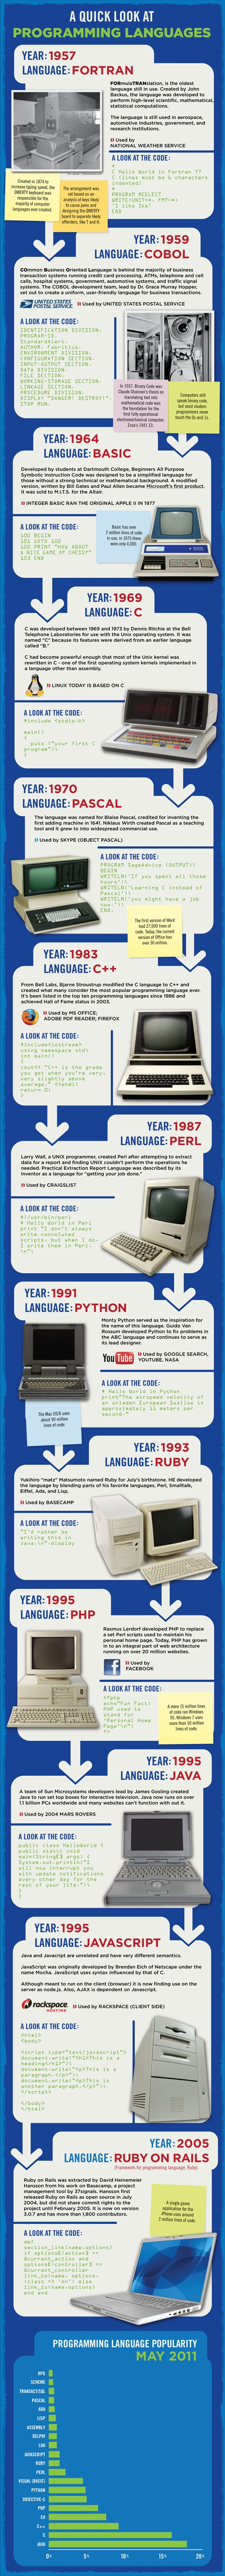 Types of Popular Computer Language and Their History...    http://blogs.perceptionsystem.com/infographic/types-popular-computer-language-history    #computer #Infographic #programming